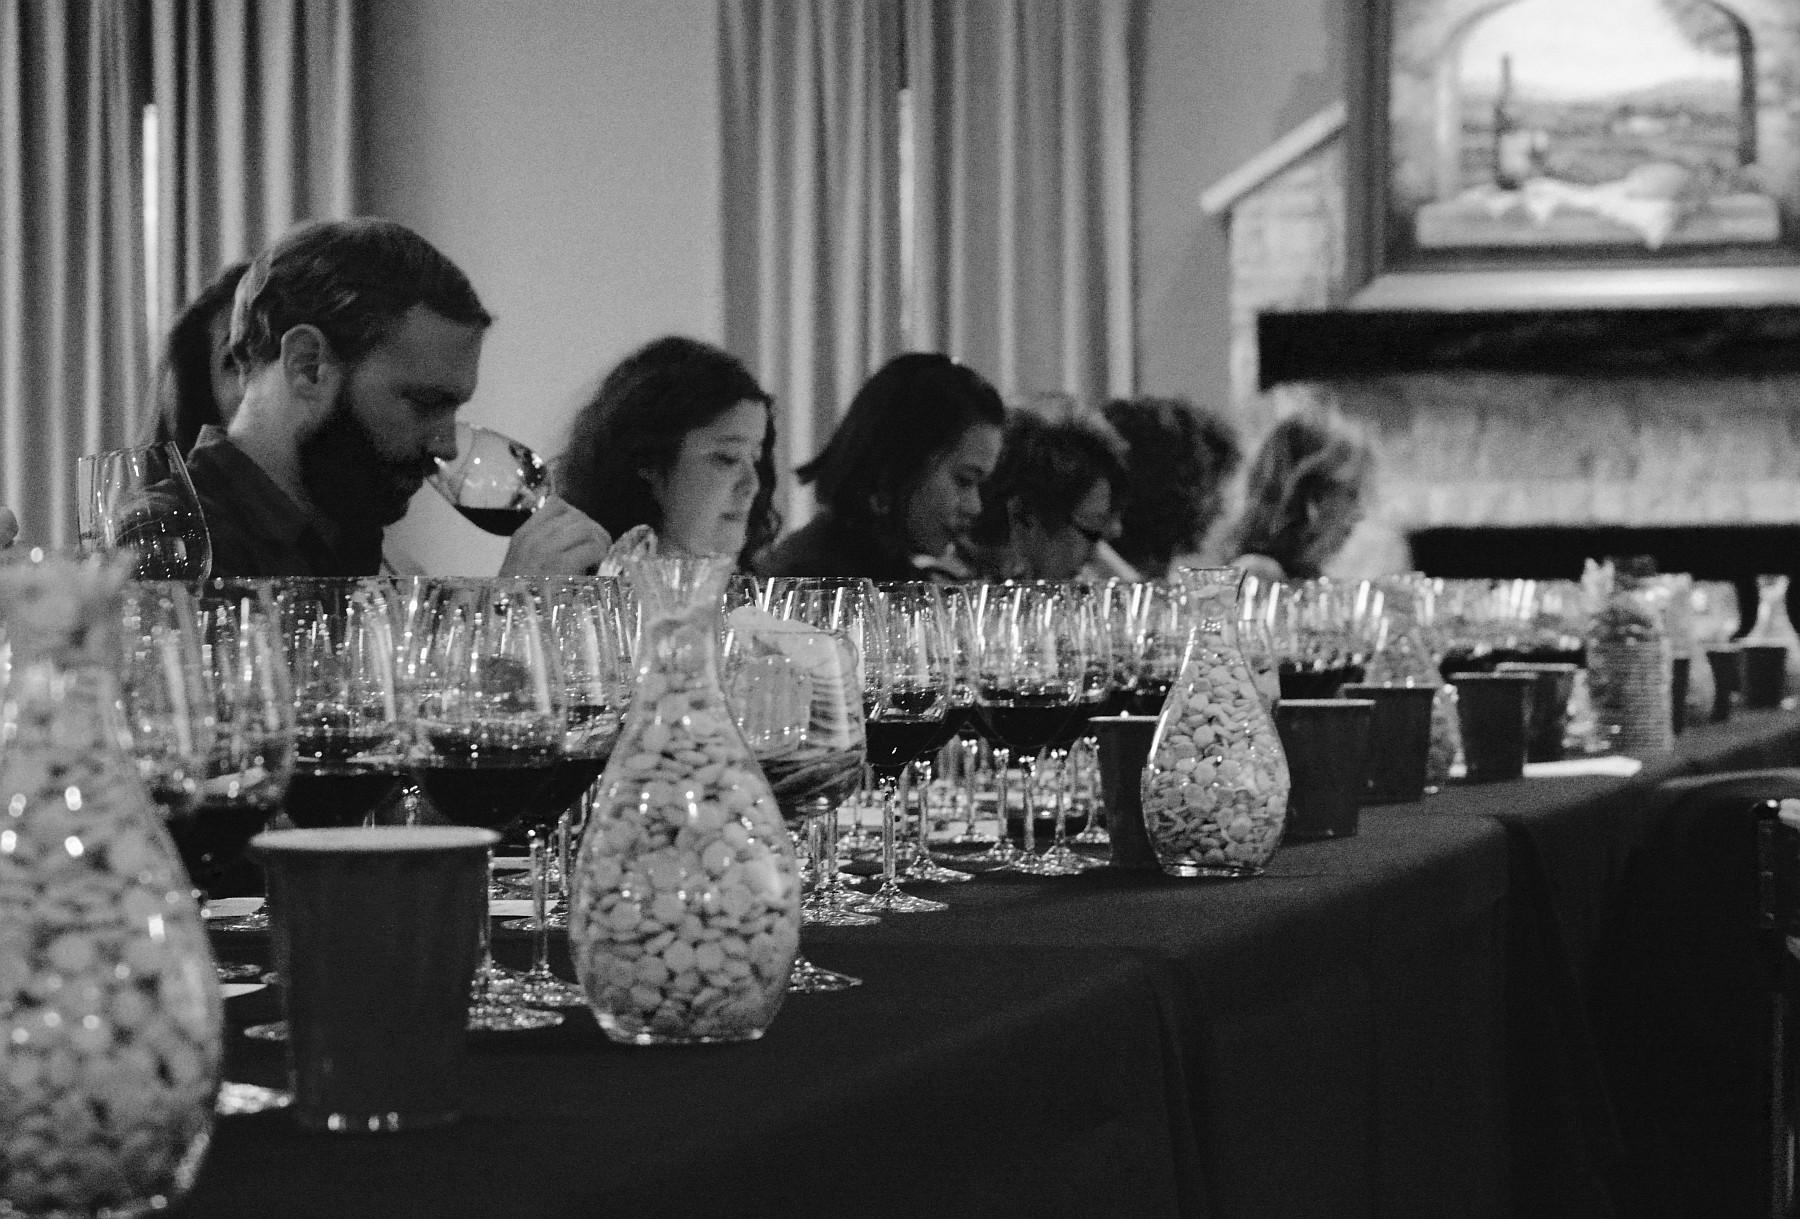 During the Tasting